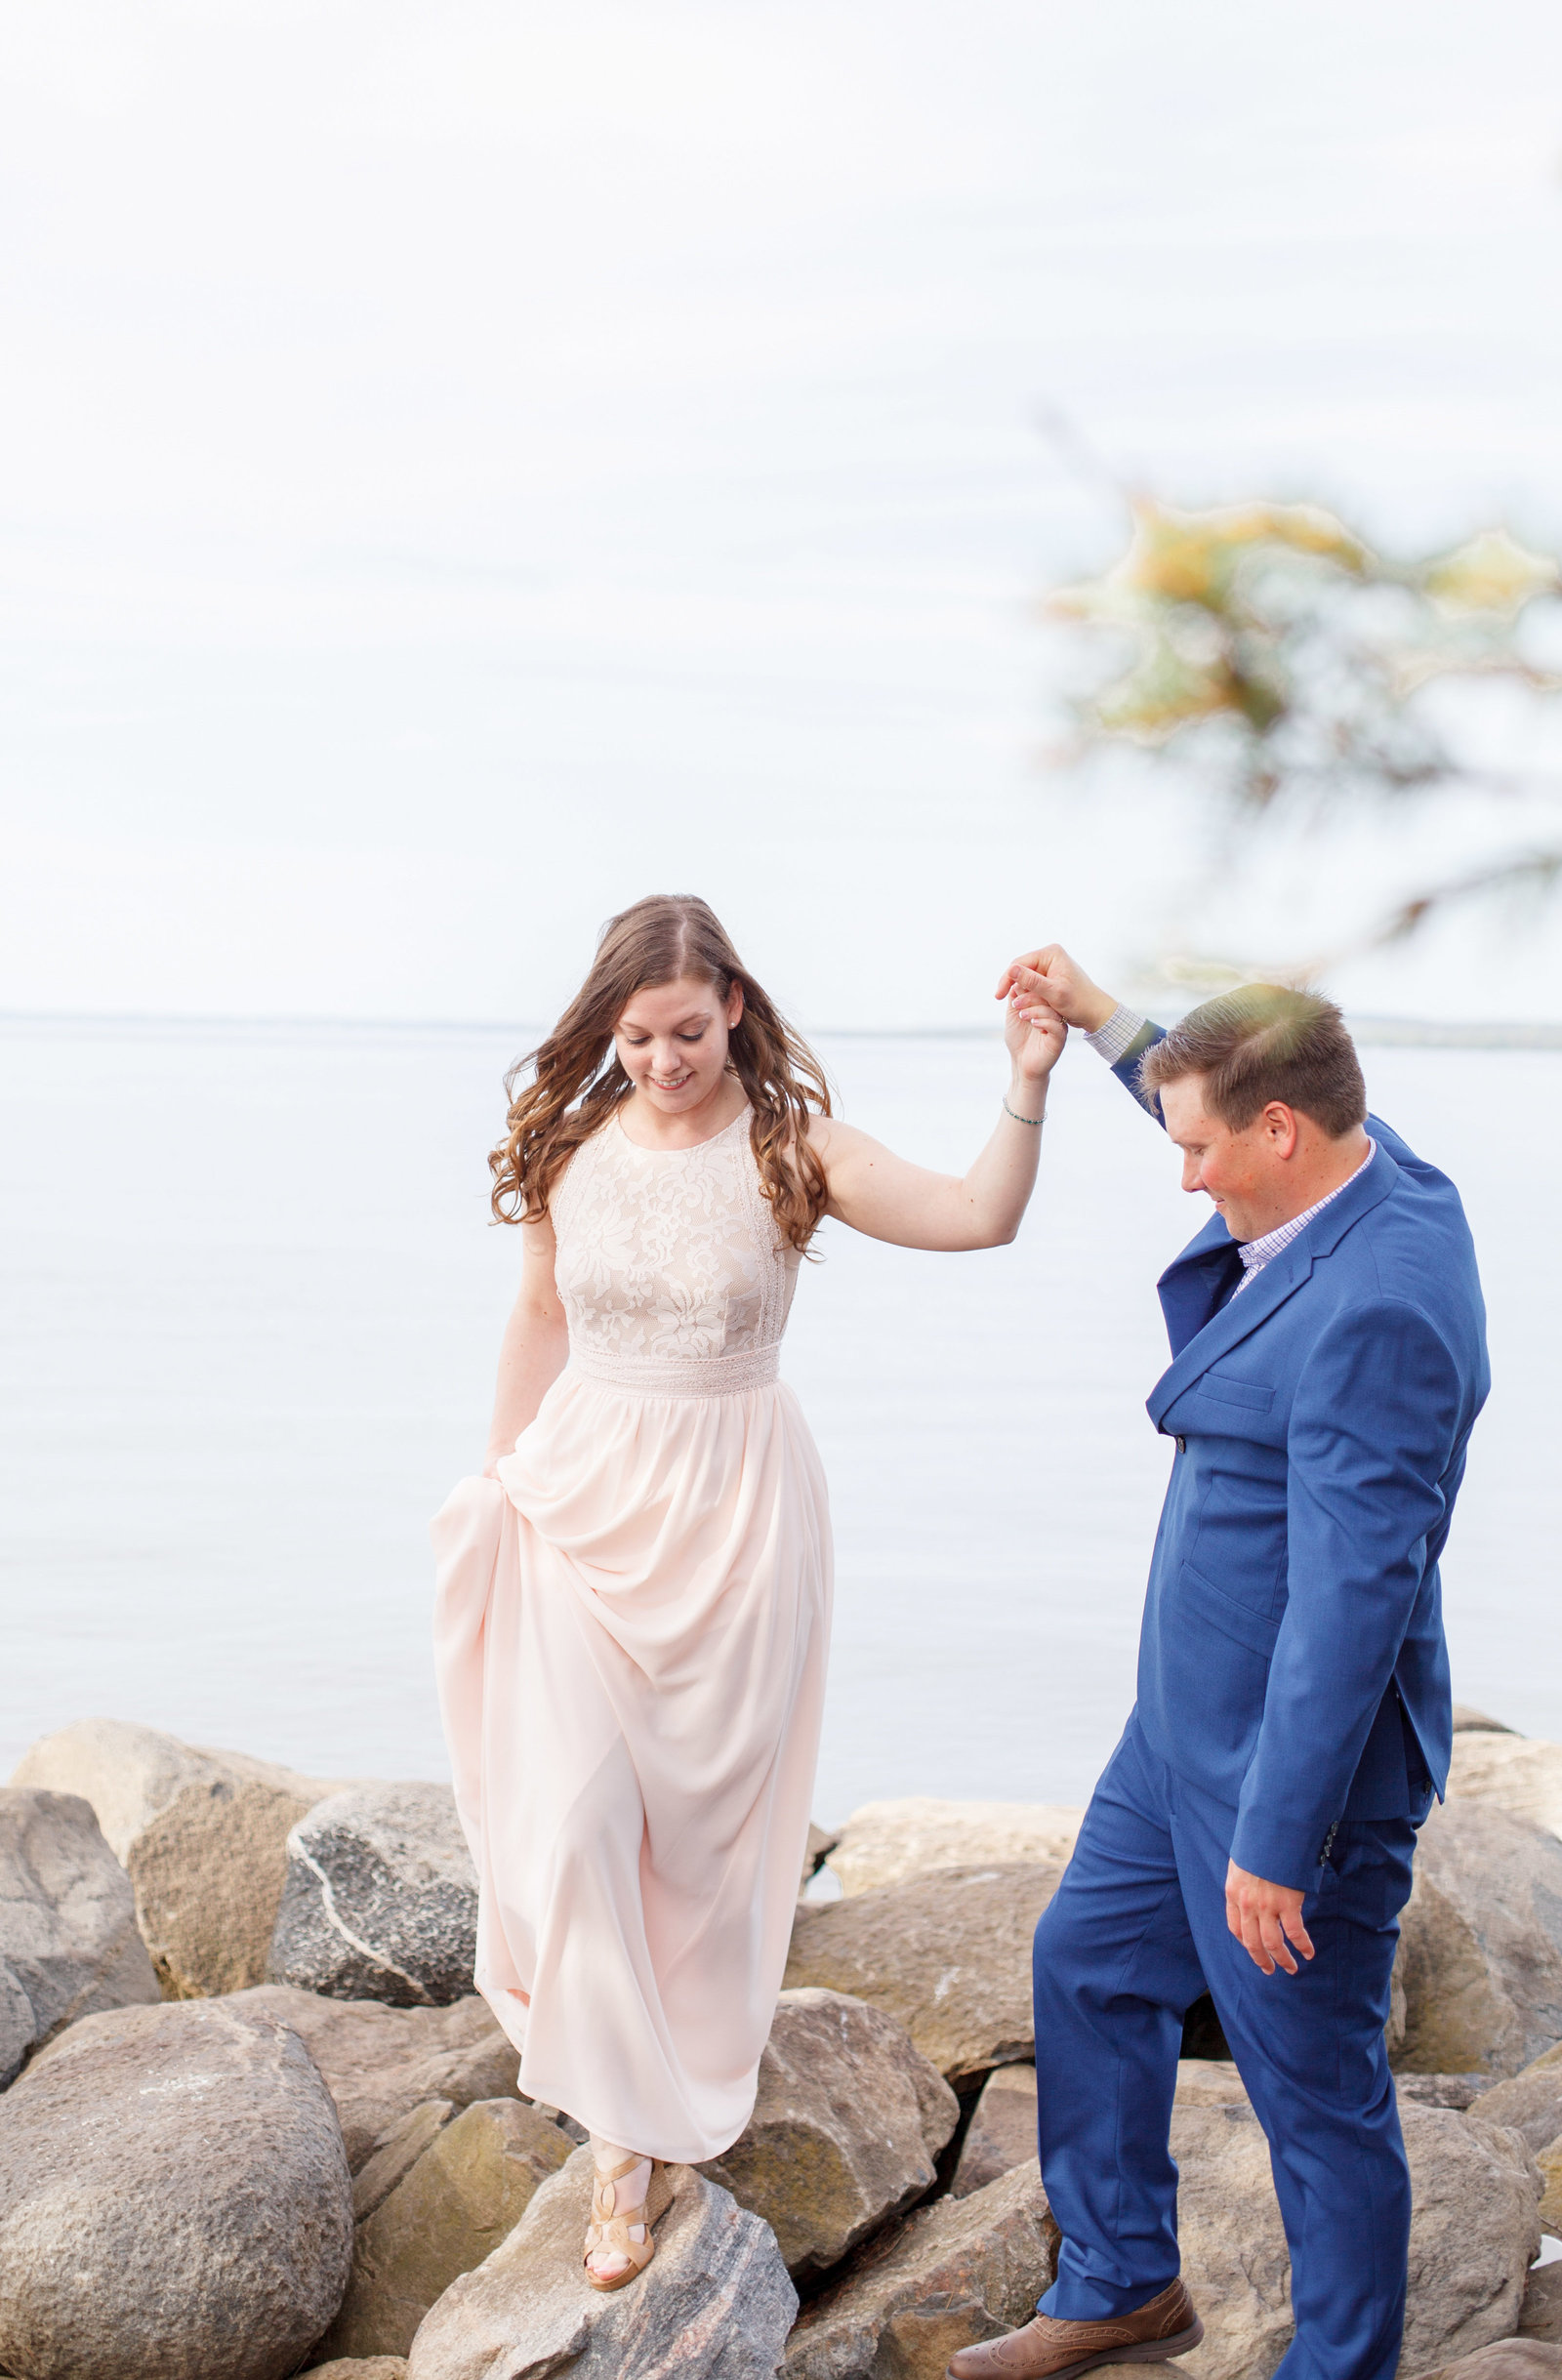 authenticweddingphotography-1